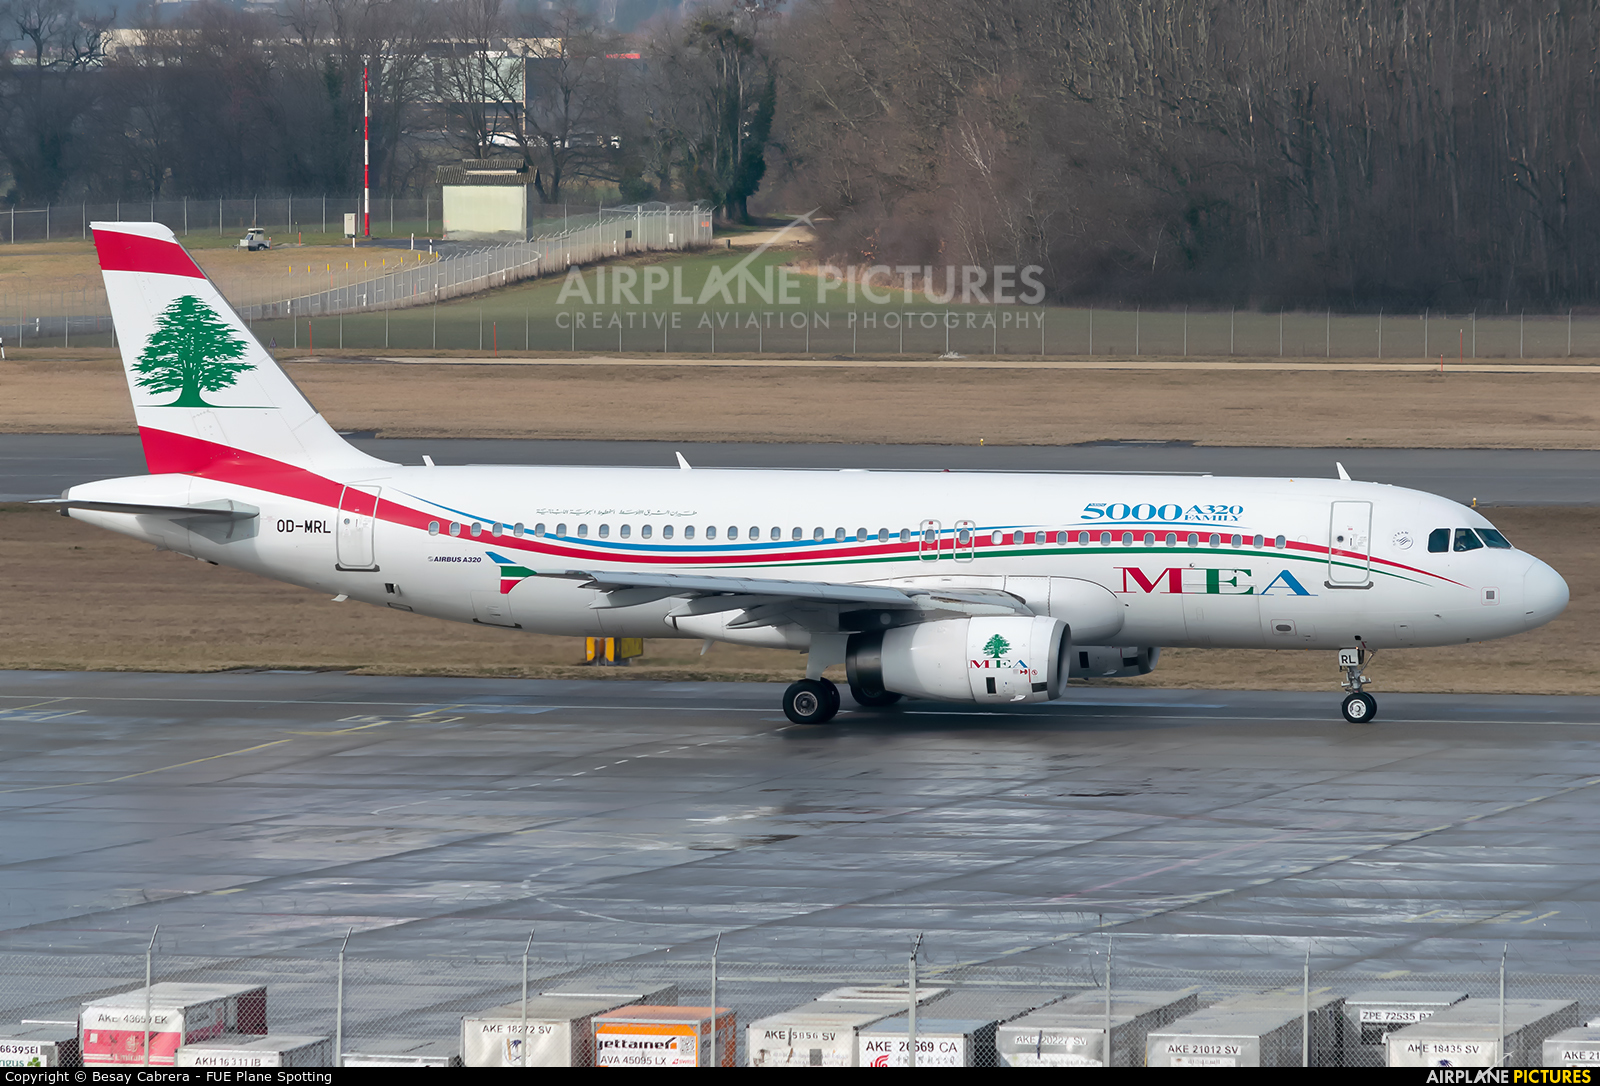 MEA - Middle East Airlines OD-MRL aircraft at Geneva Intl